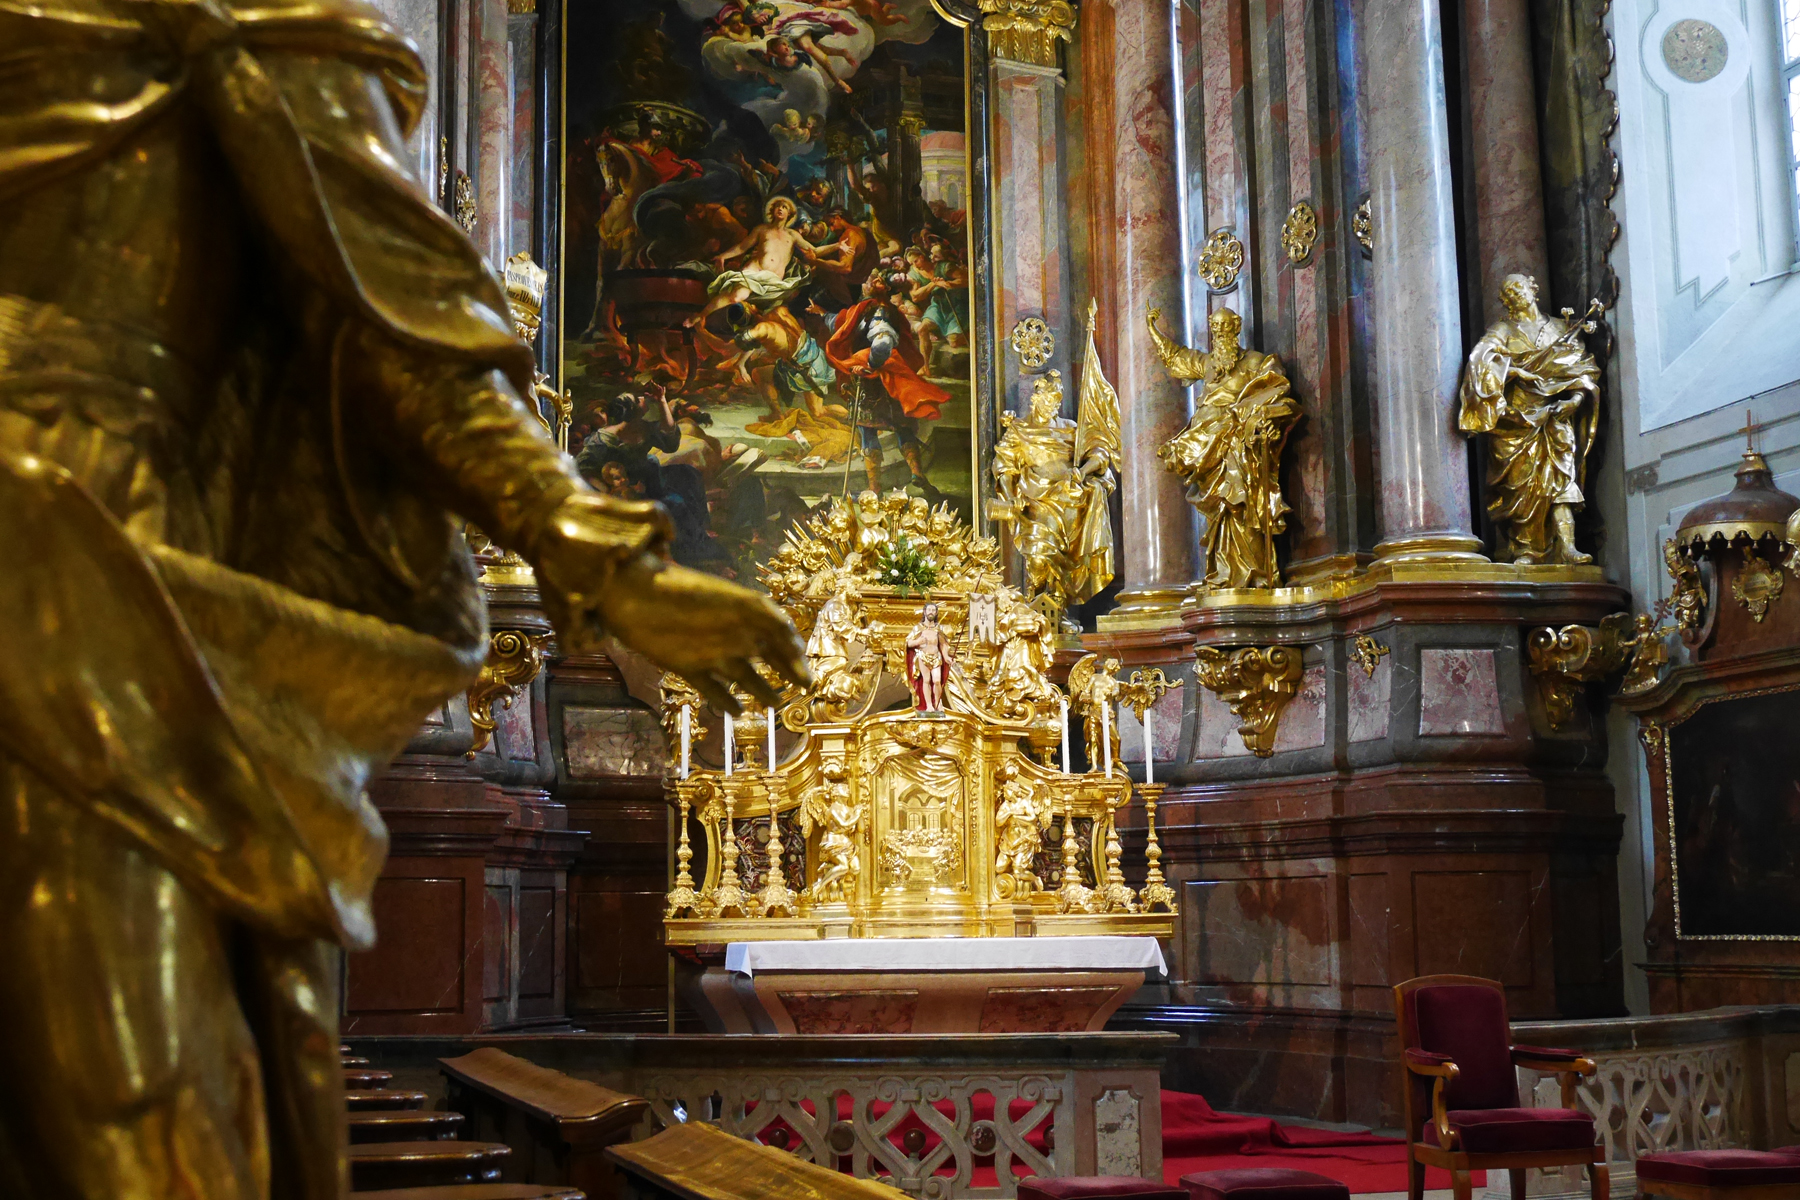 Parish Church of St. Vitus, Krems